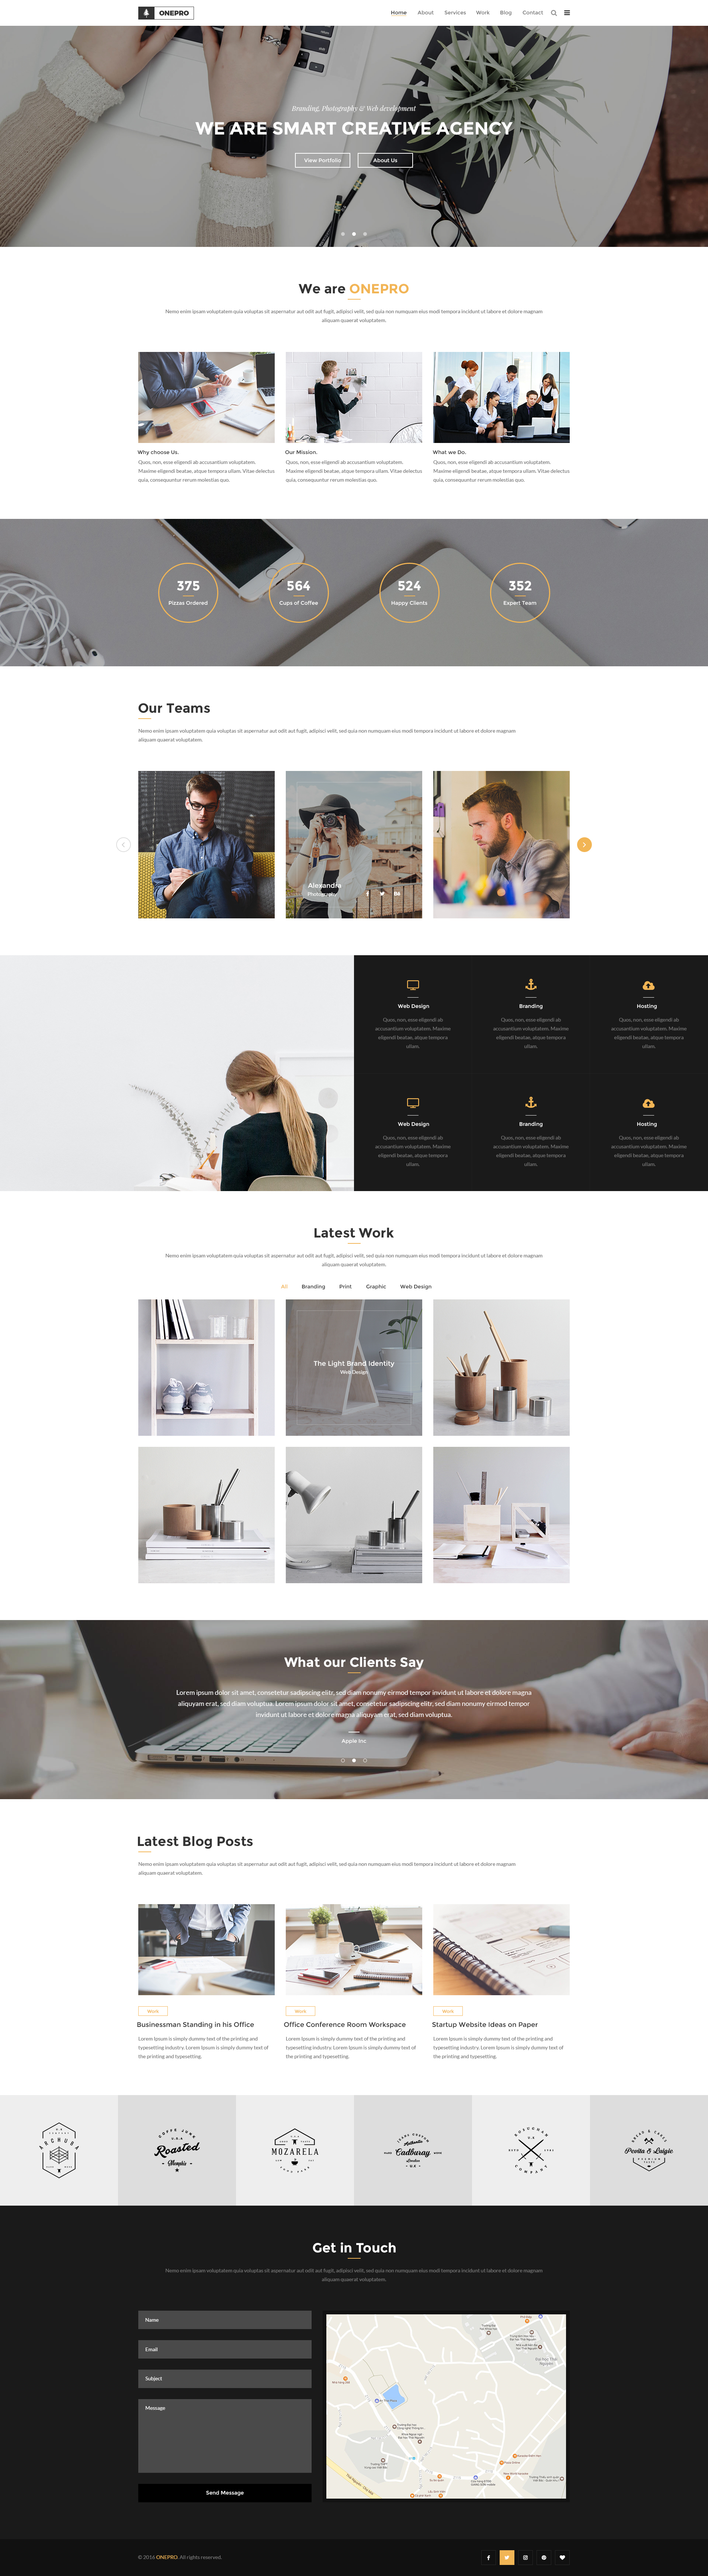 OnePro - Responsive Onepage HTML Template - 1